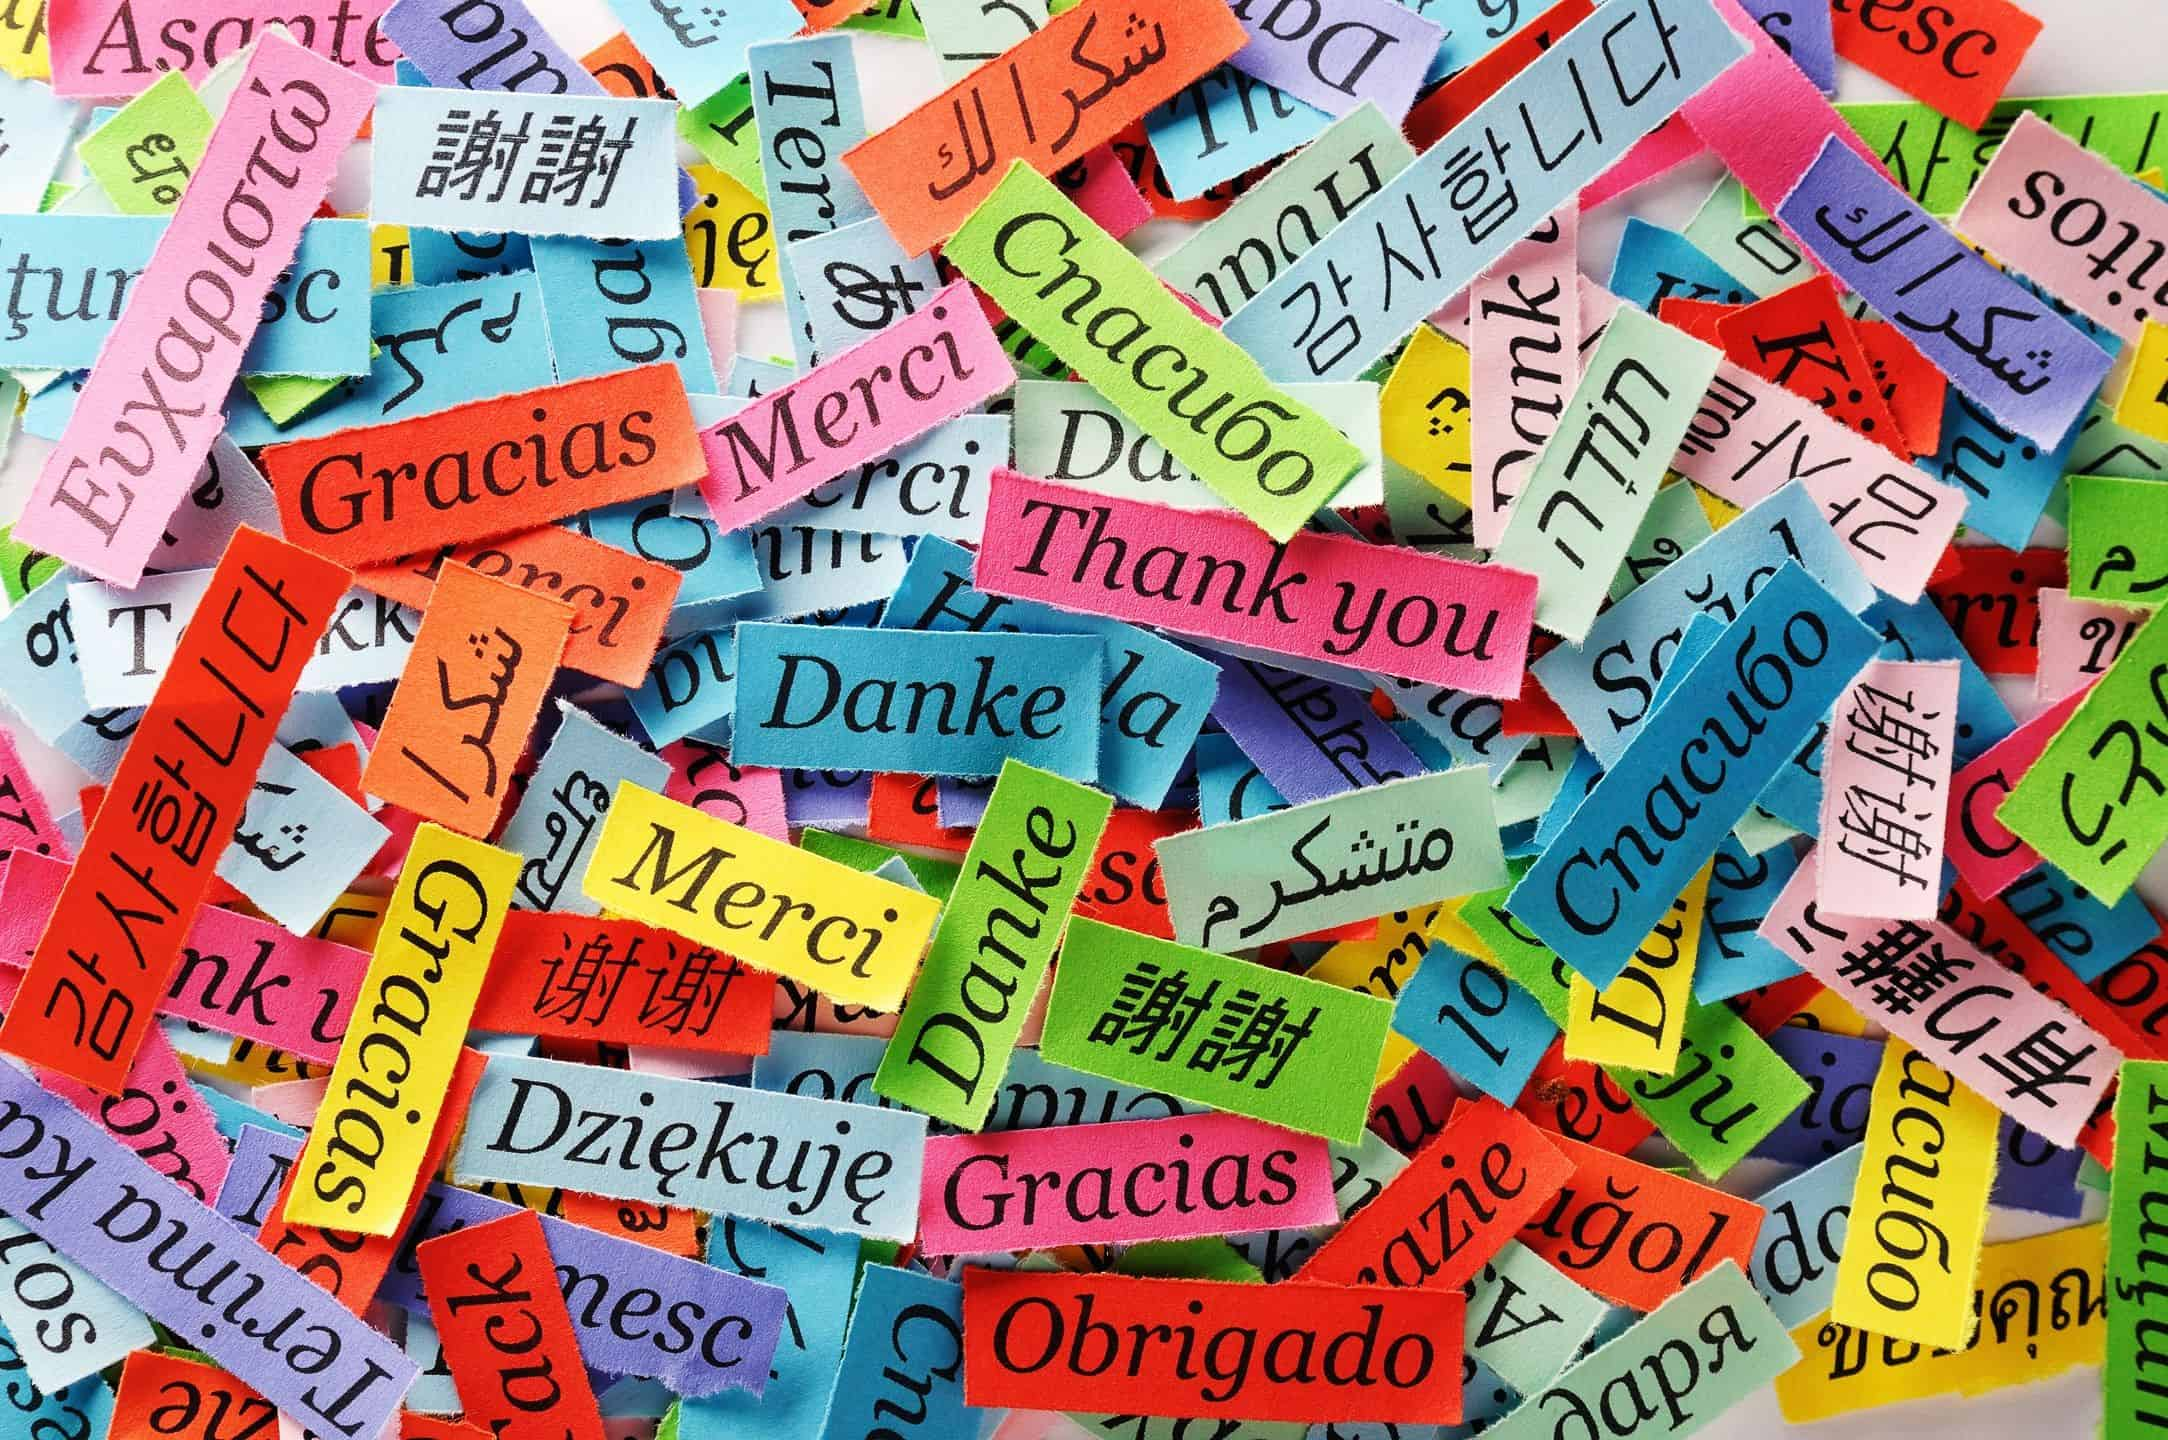 Thank you written in a range of languages on different colour paper scattered across a table